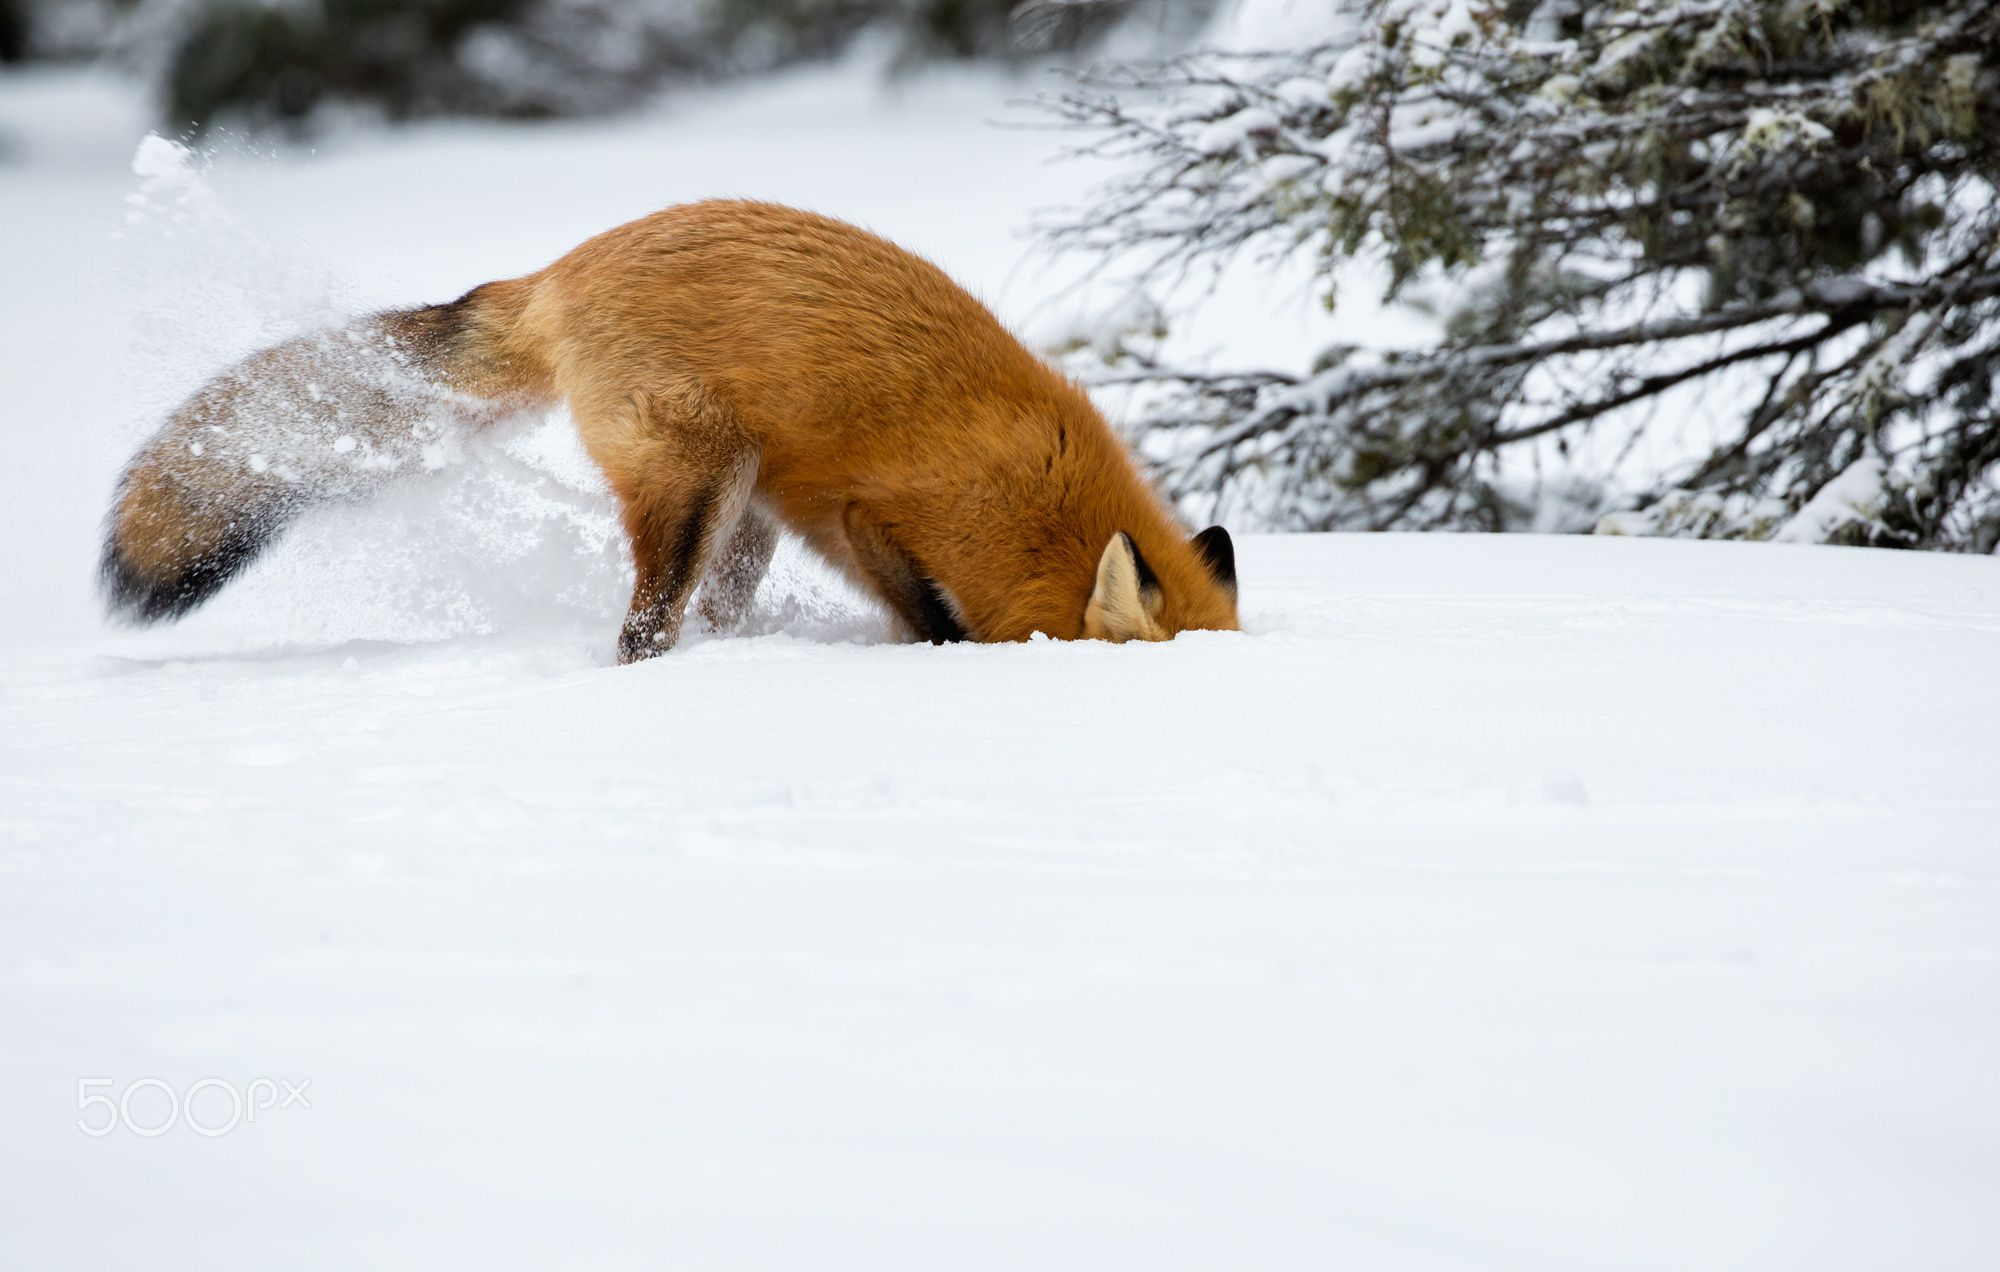 Red Fox by Steven Rose on 500px